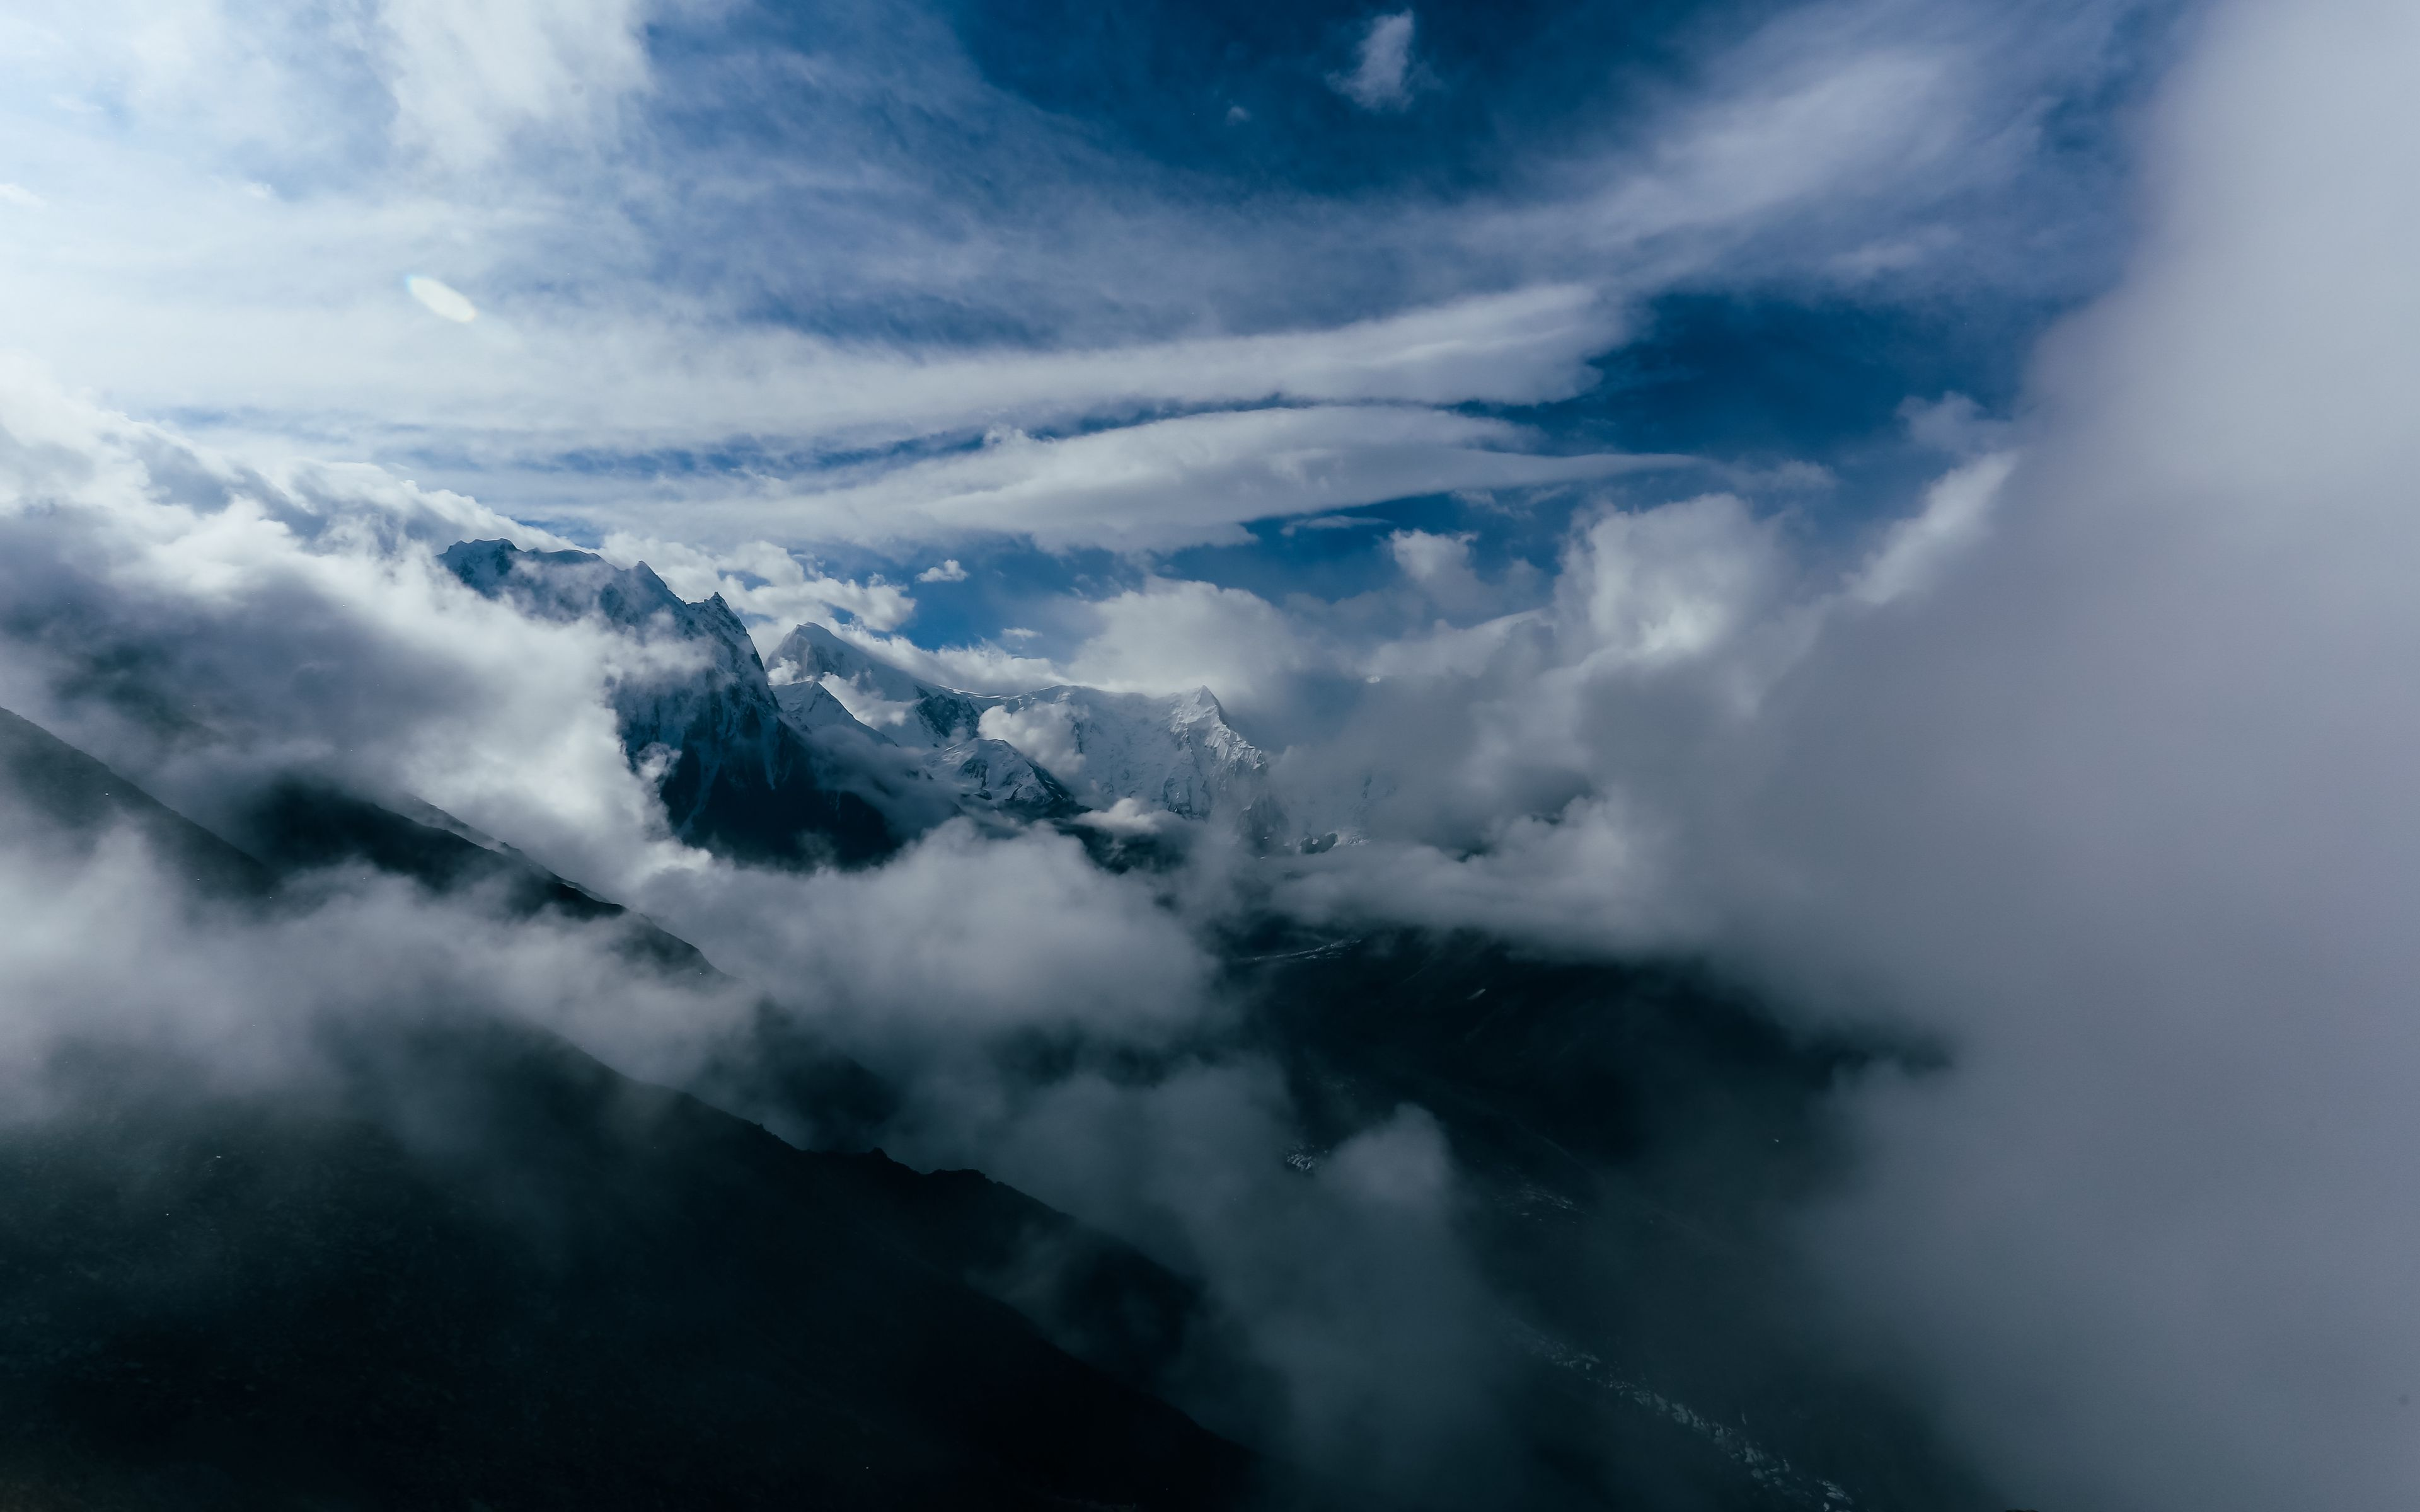 3840x2400 Wallpaper mountains, clouds, snow